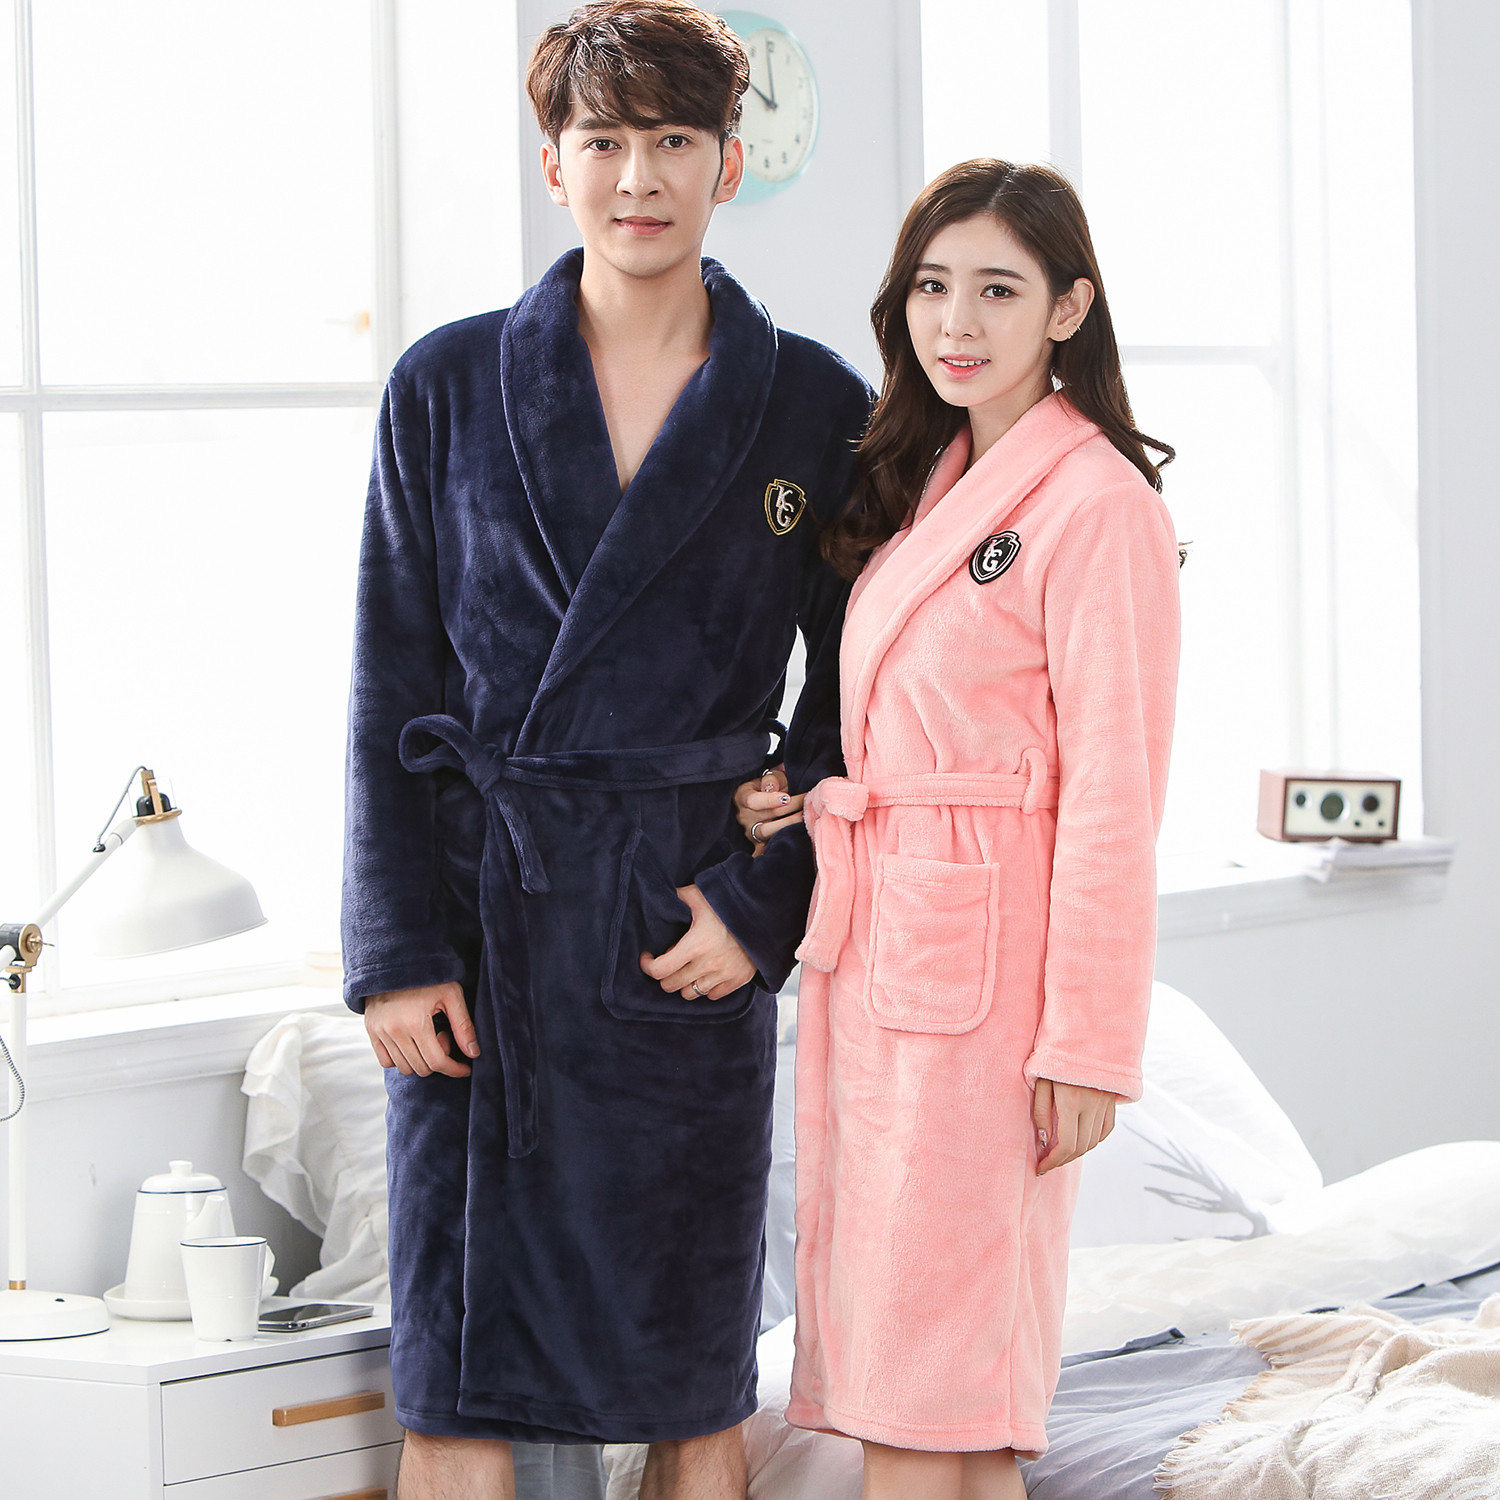 Plus Size 3XL For Men&women Full Sleeve Intimate Lingerie Solid Colour Home Dressing Gown Bathrobe Gown V-neck Sleepwear